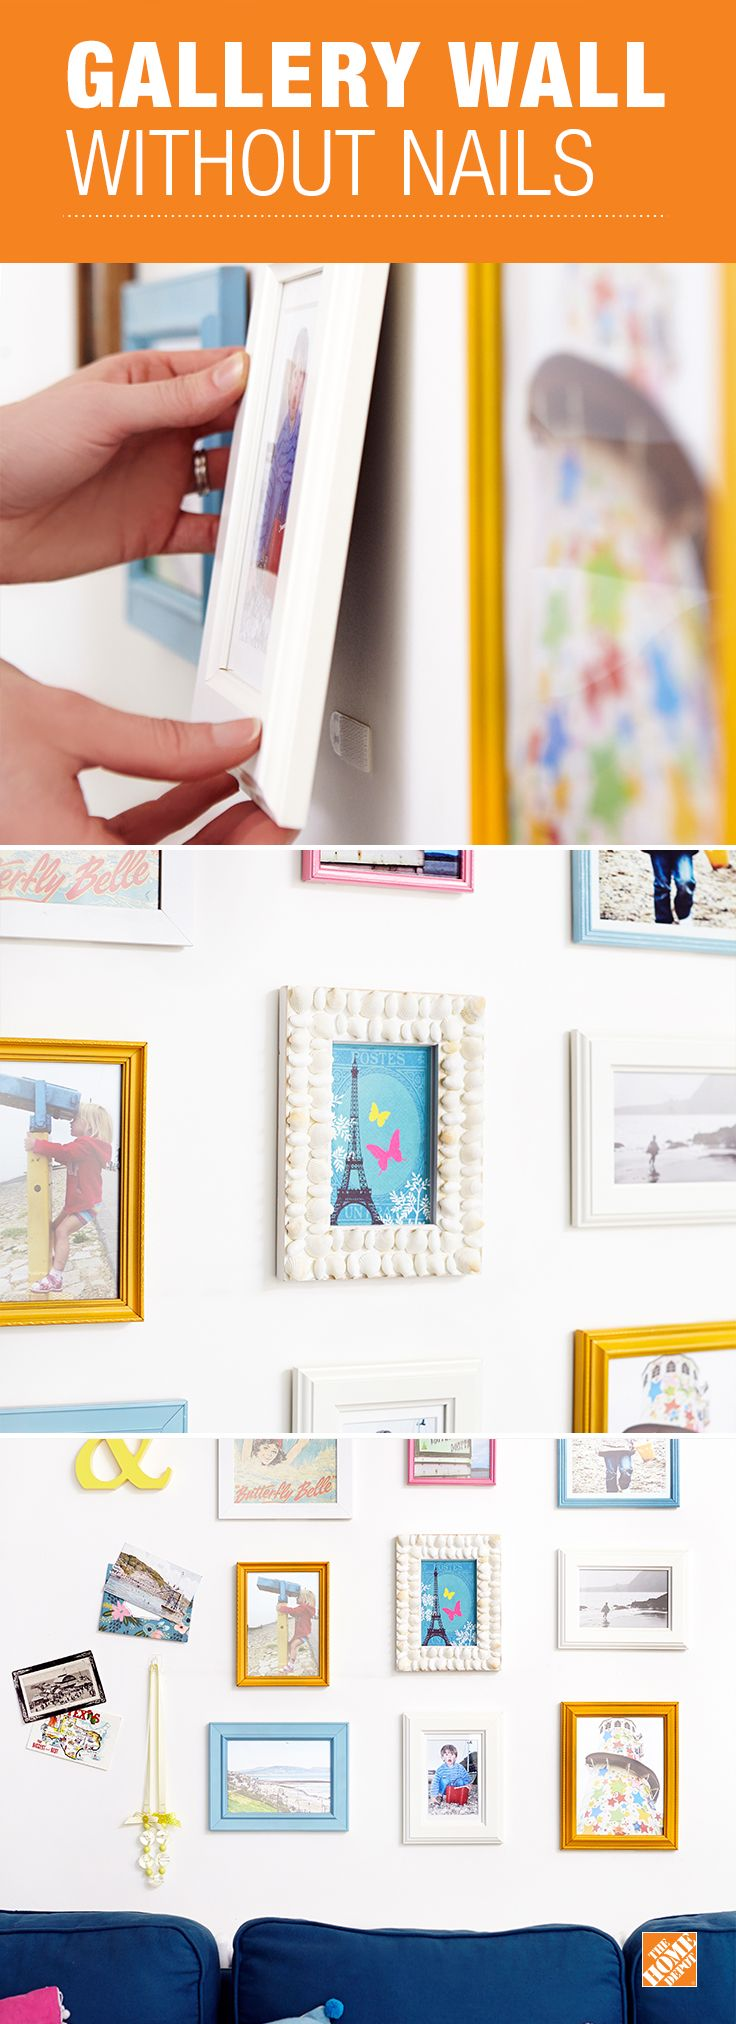 Command Picture Hanging Strips let you decorate your walls damage-free with no sticky residue left behind. Simple to install and great for DIY gallery walls and other creative arrangements, they hold frames up to 24 x 30 inches and work on a variety of wall surfaces including wood, tile and metal. Use in dorm rooms, rental apartments or anywhere you want to keep walls beautiful and damage-free.